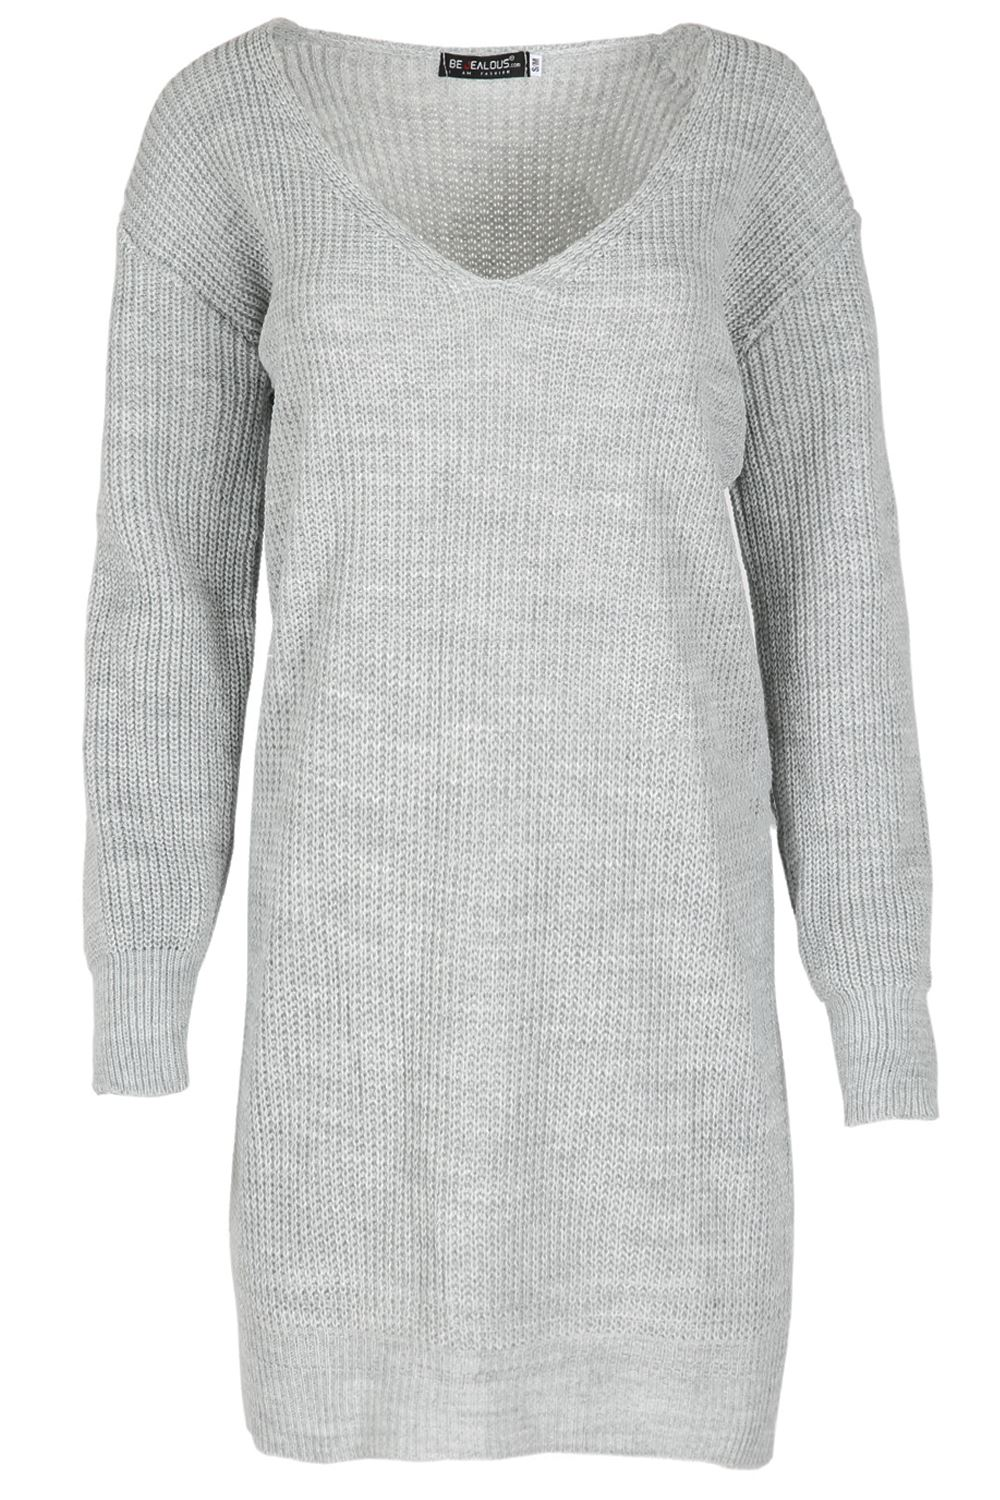 Womens-Oversized-Jumper-Ladies-Dress-Long-Sleeve-Chunky-Knitted-Long-Sweater-Top thumbnail 51